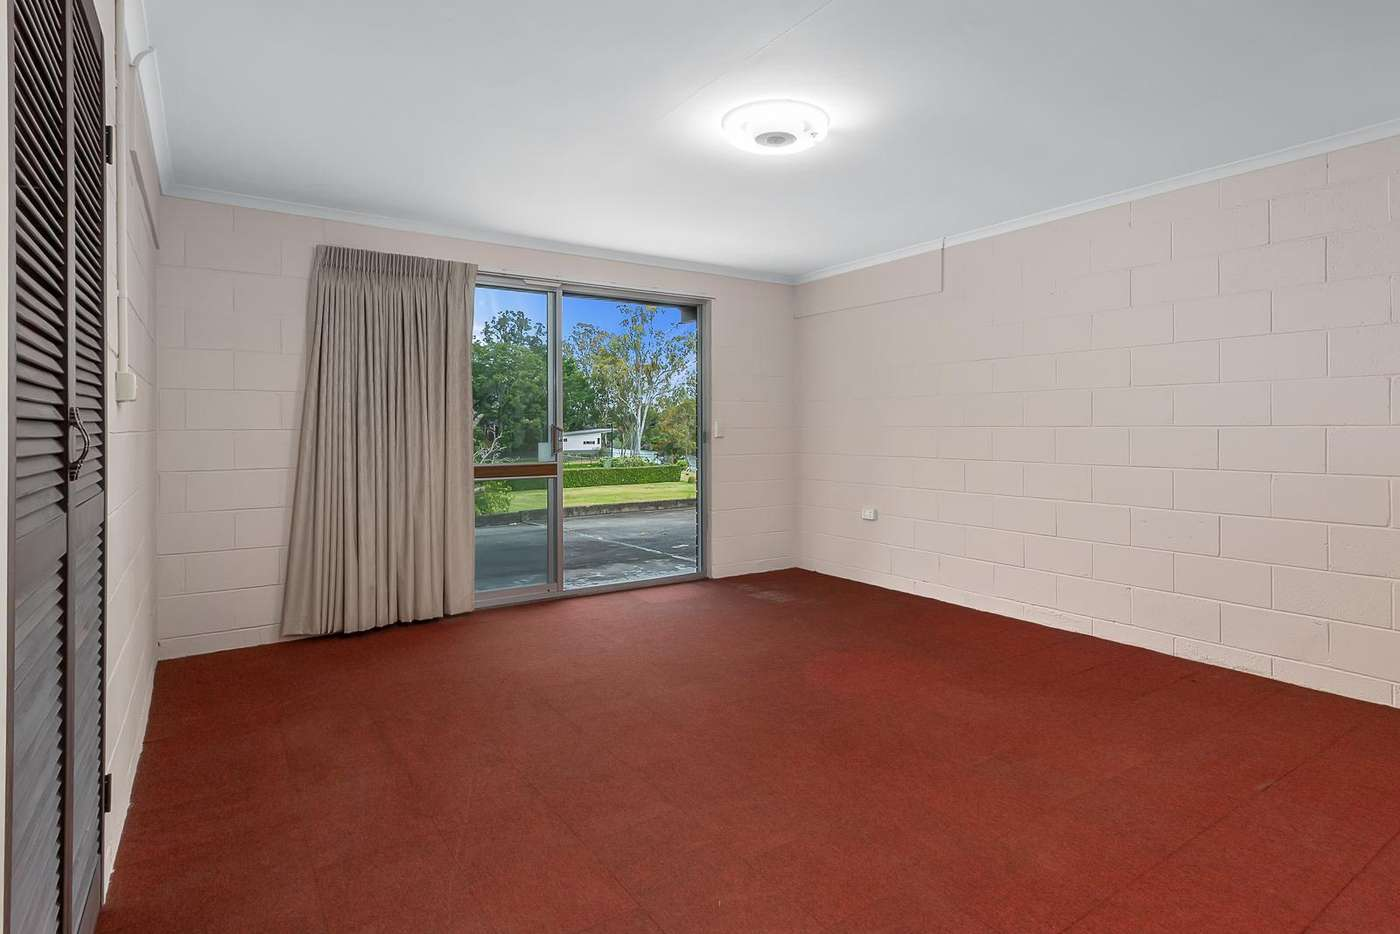 Seventh view of Homely house listing, 12-14 Burnside Court, Ashmore QLD 4214